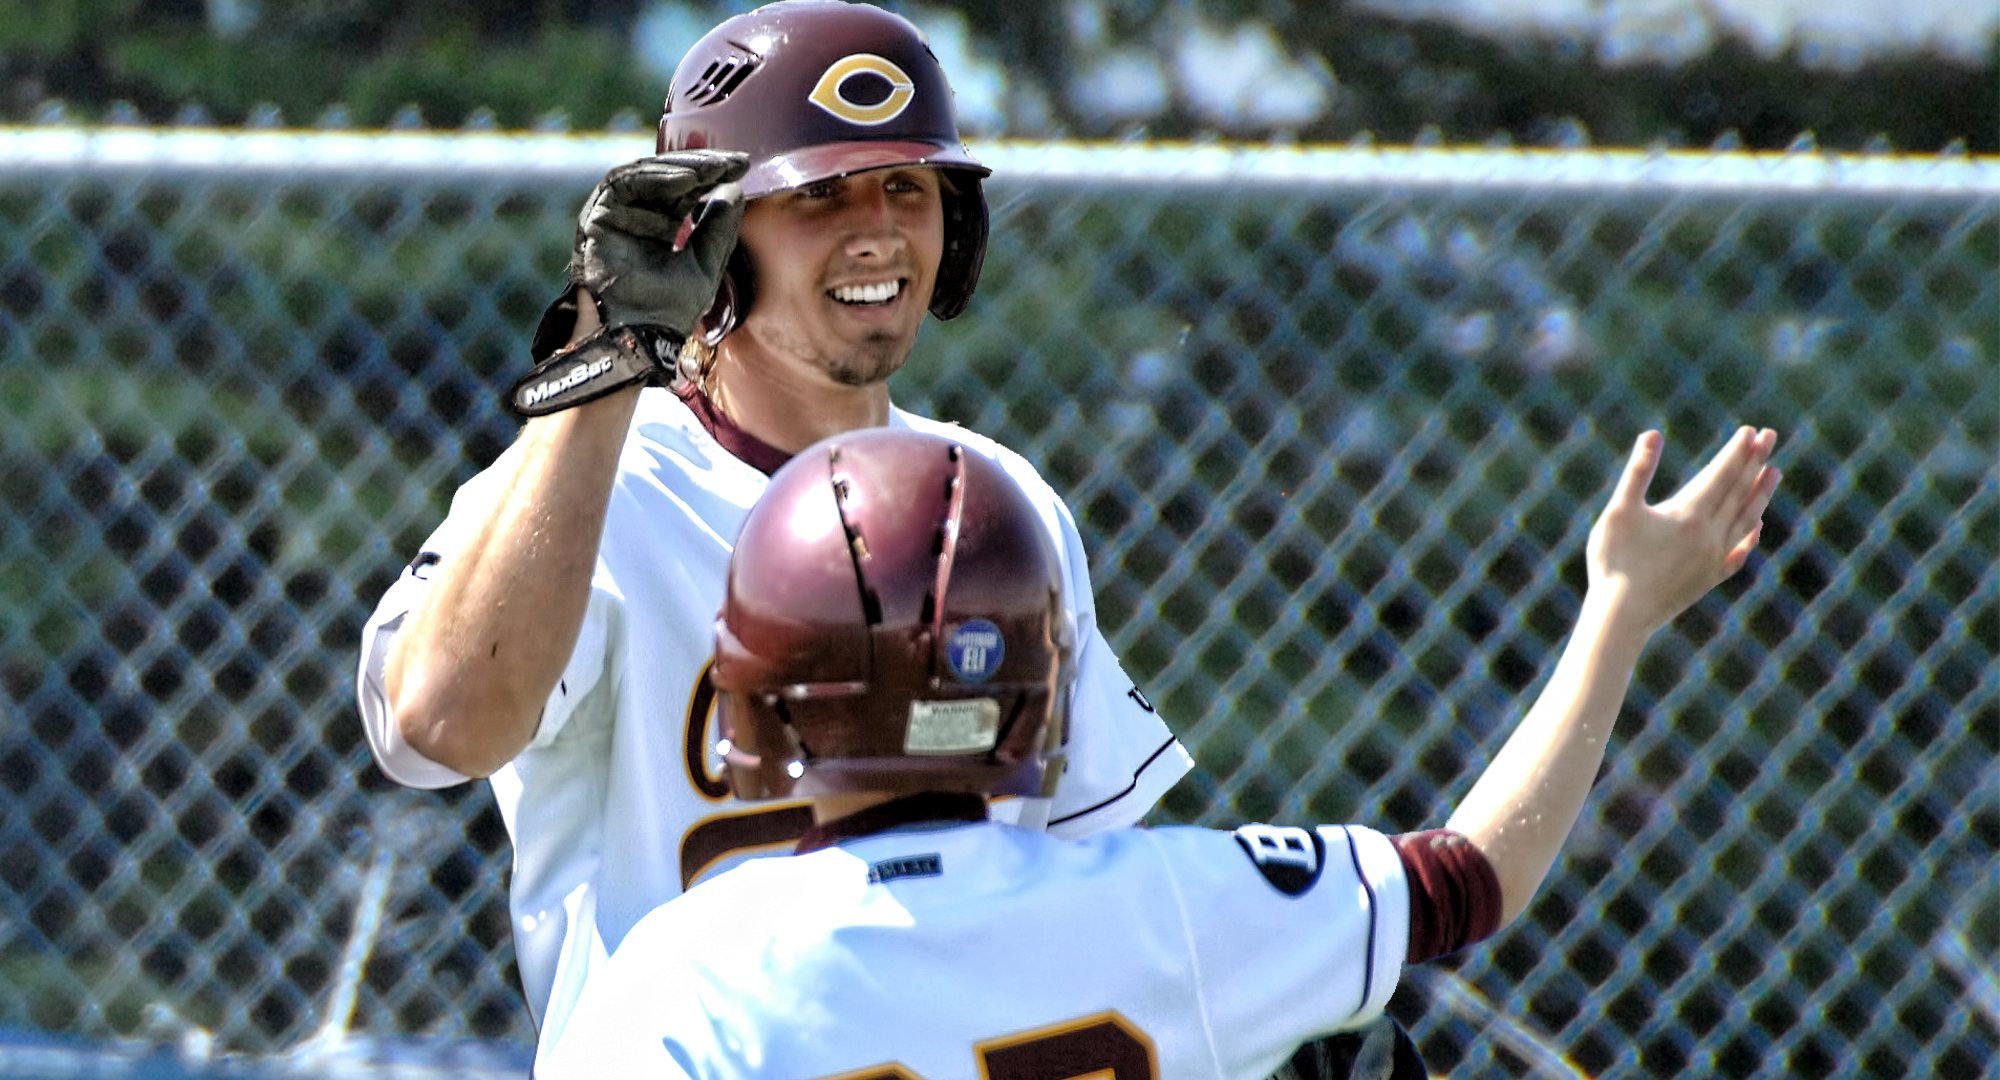 Austin Ver Steeg pitched a complete-game shutout and hit the game-winning home run in the Cobbers' 2-0 Game 1 win over Pitt.-Greensburg.